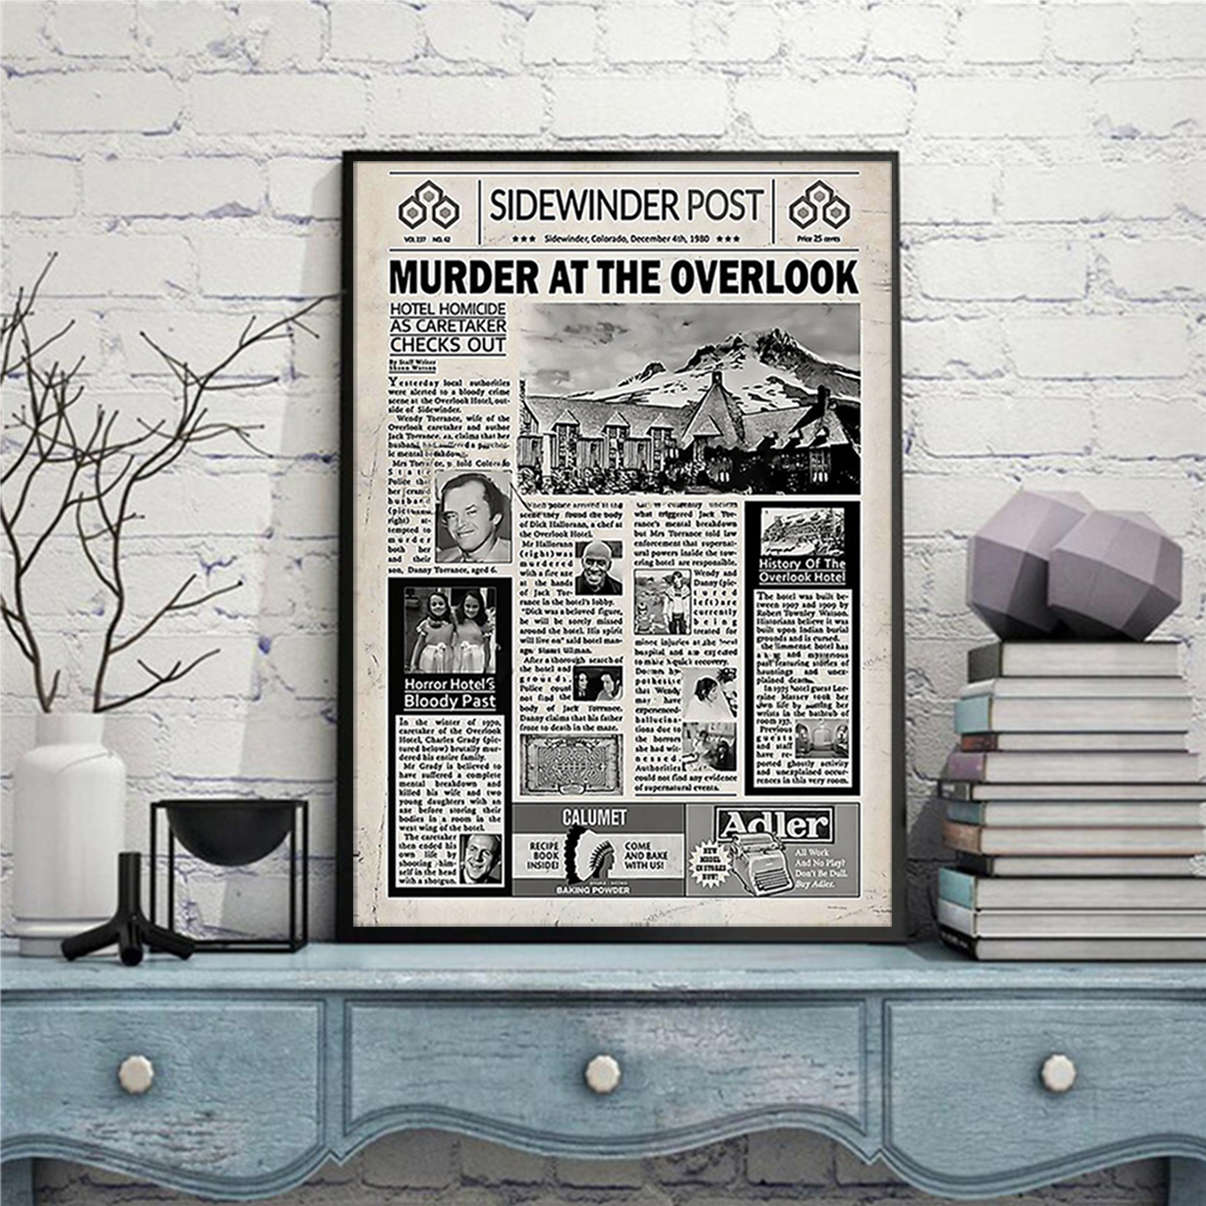 Sidewinder post murder at the overlook poster A3